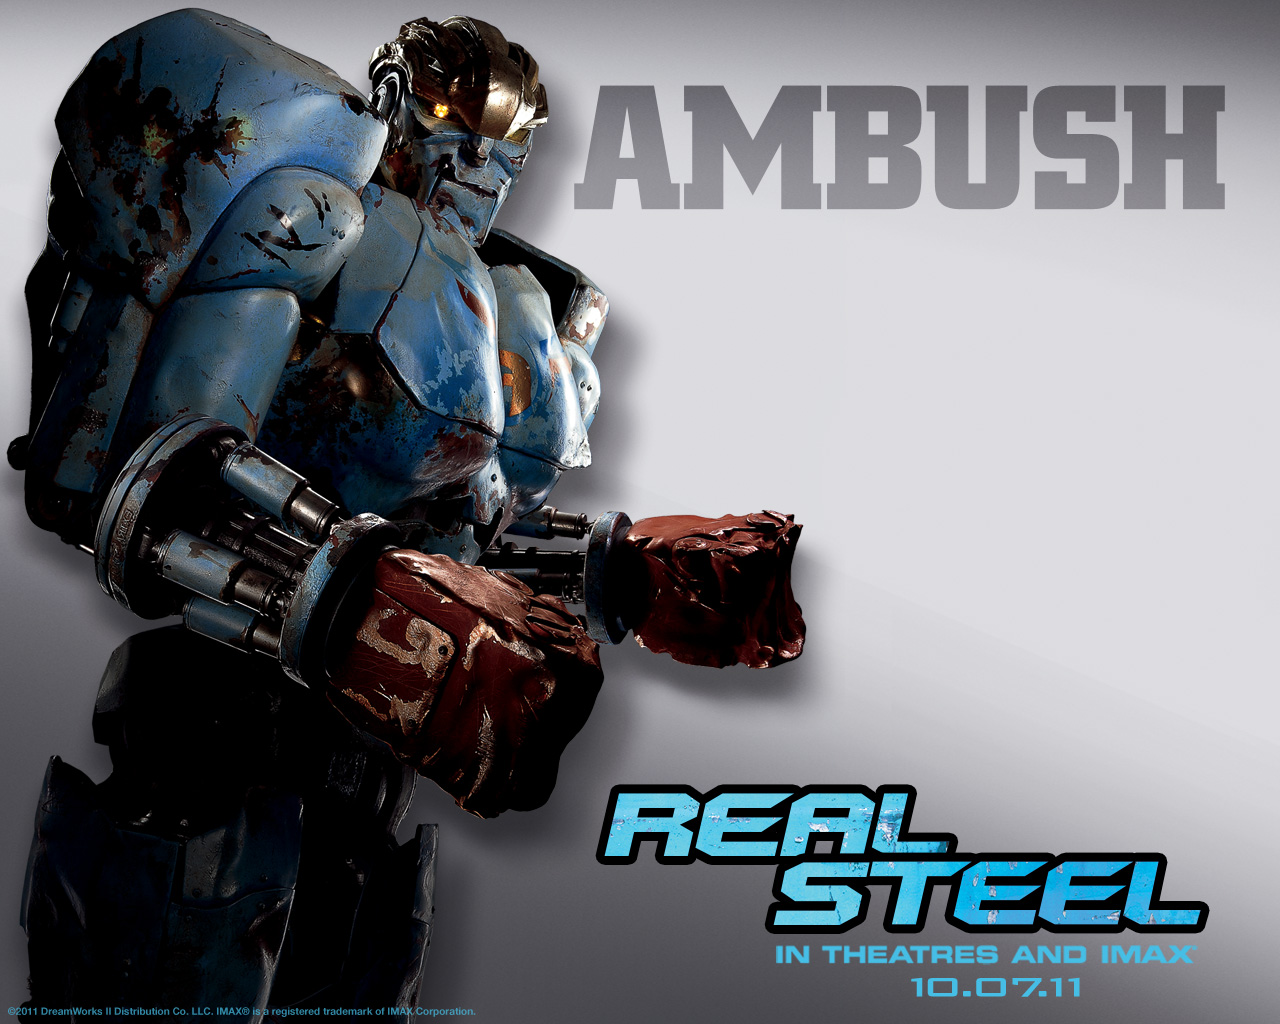 Free Download Real Steel 2011 Posters And Some Thoughts 1280x1024 For Your Desktop Mobile Tablet Explore 40 Atom Real Steel Wallpaper Atom Real Steel Wallpaper Atom Real Steel Wallpapers Real Steel Wallpapers